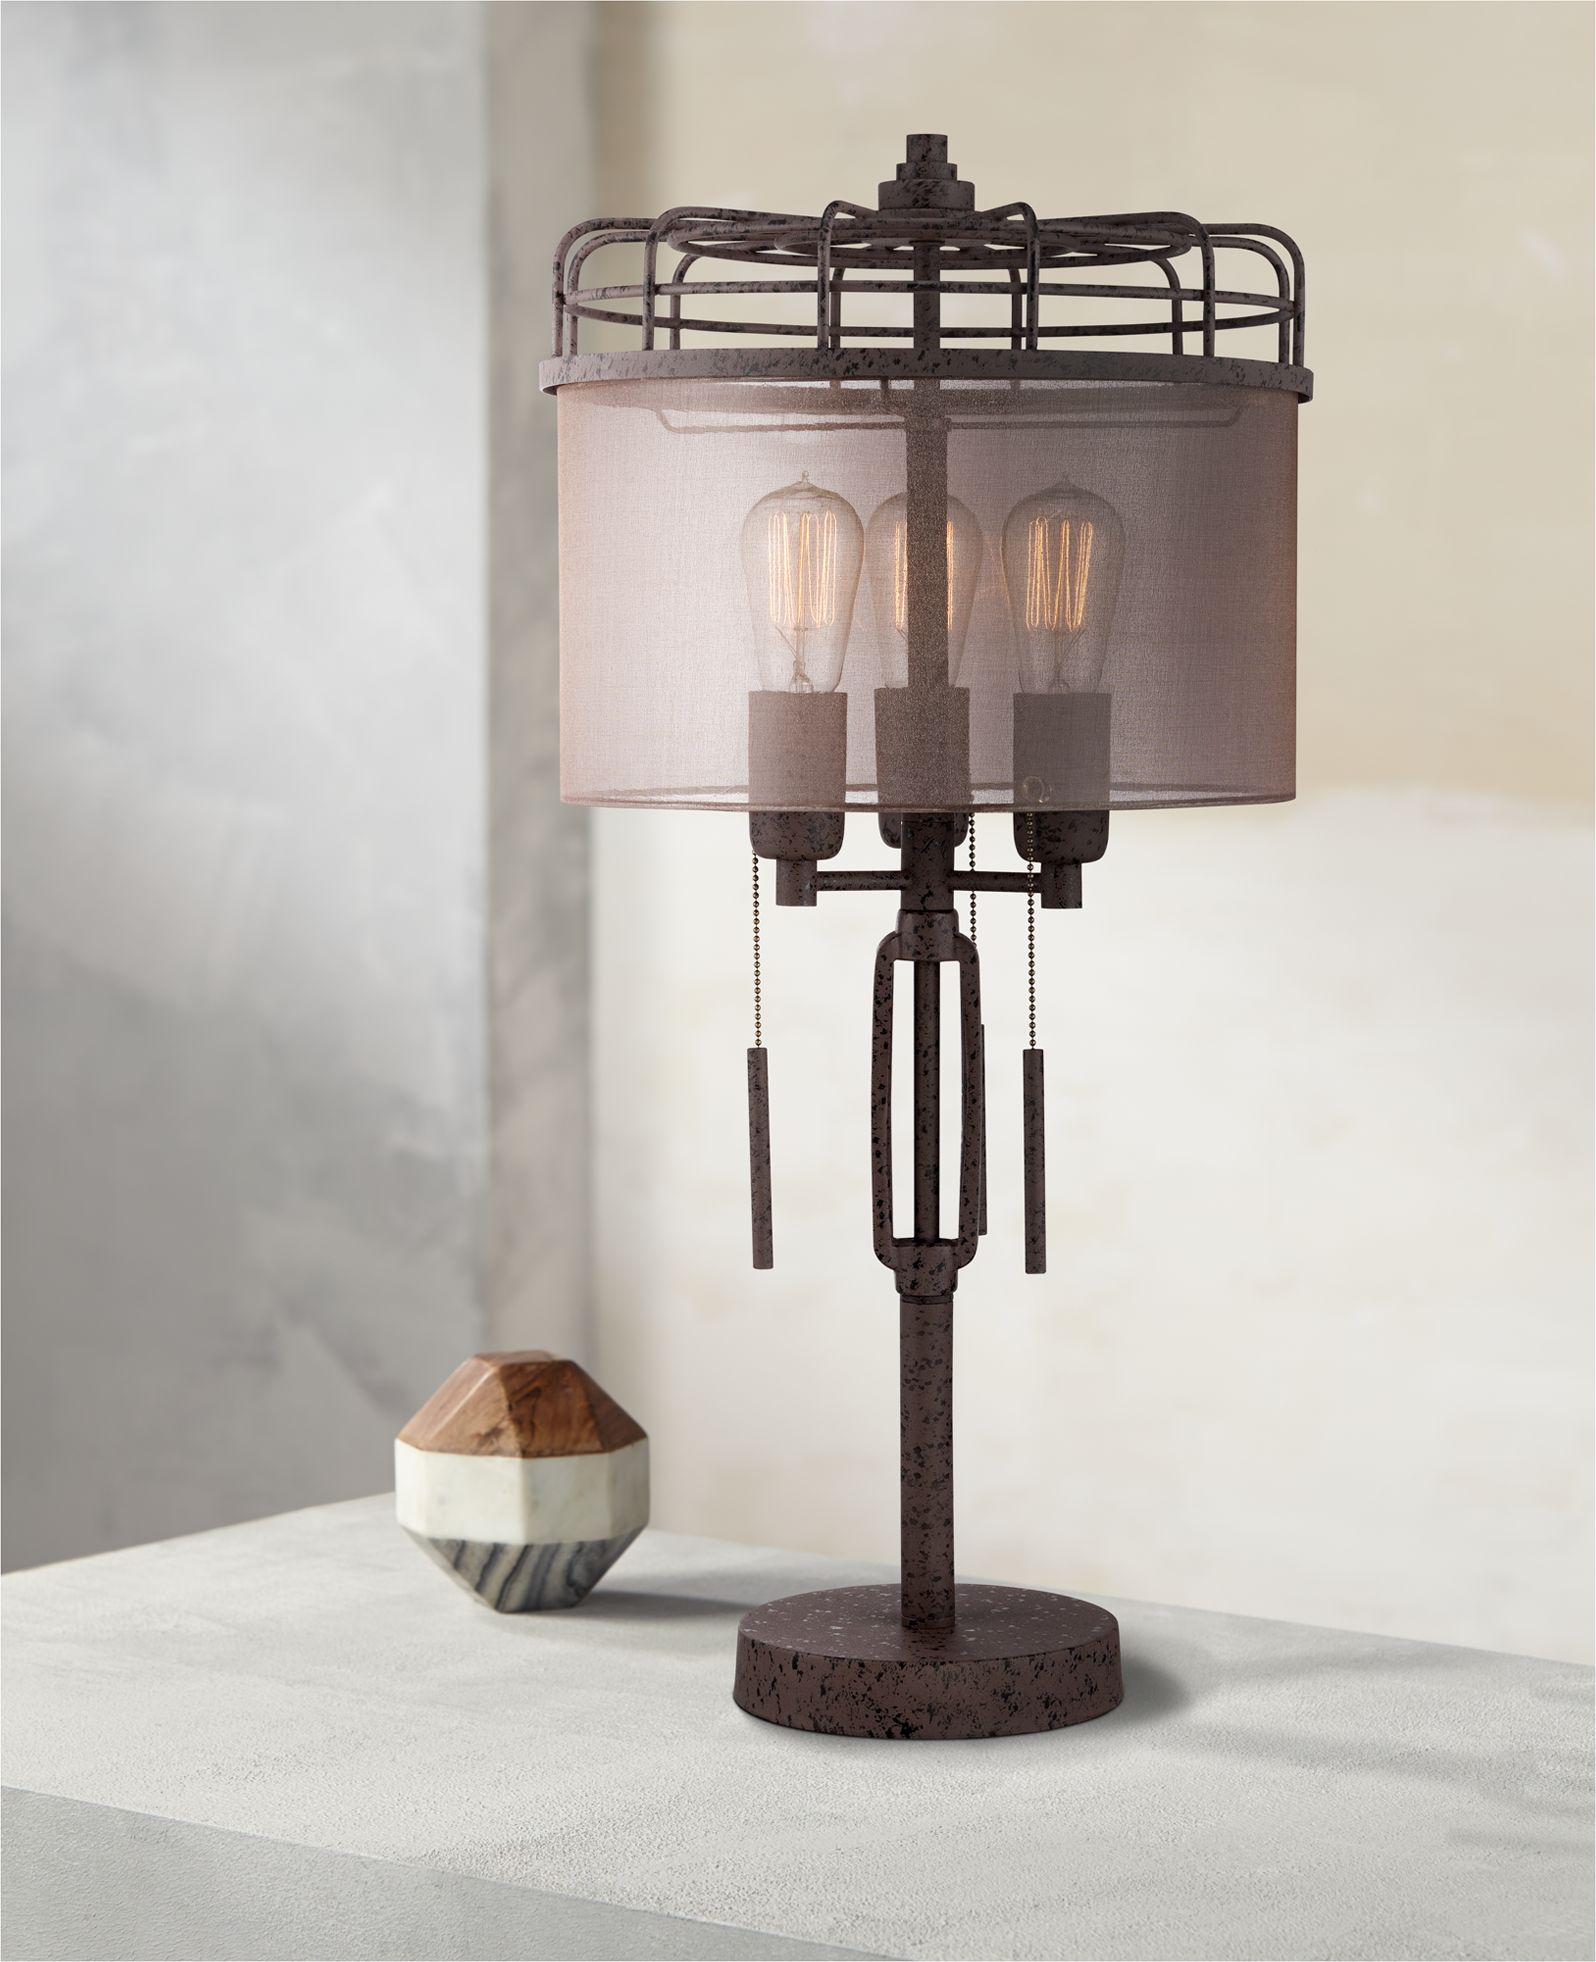 Franklin Iron Works Industrial Table Lamp Rustic Bronze Metal Cage Sheer  Drum Shade Vintage Edison Bulbs For Living Room Bedroom   Walmart.com